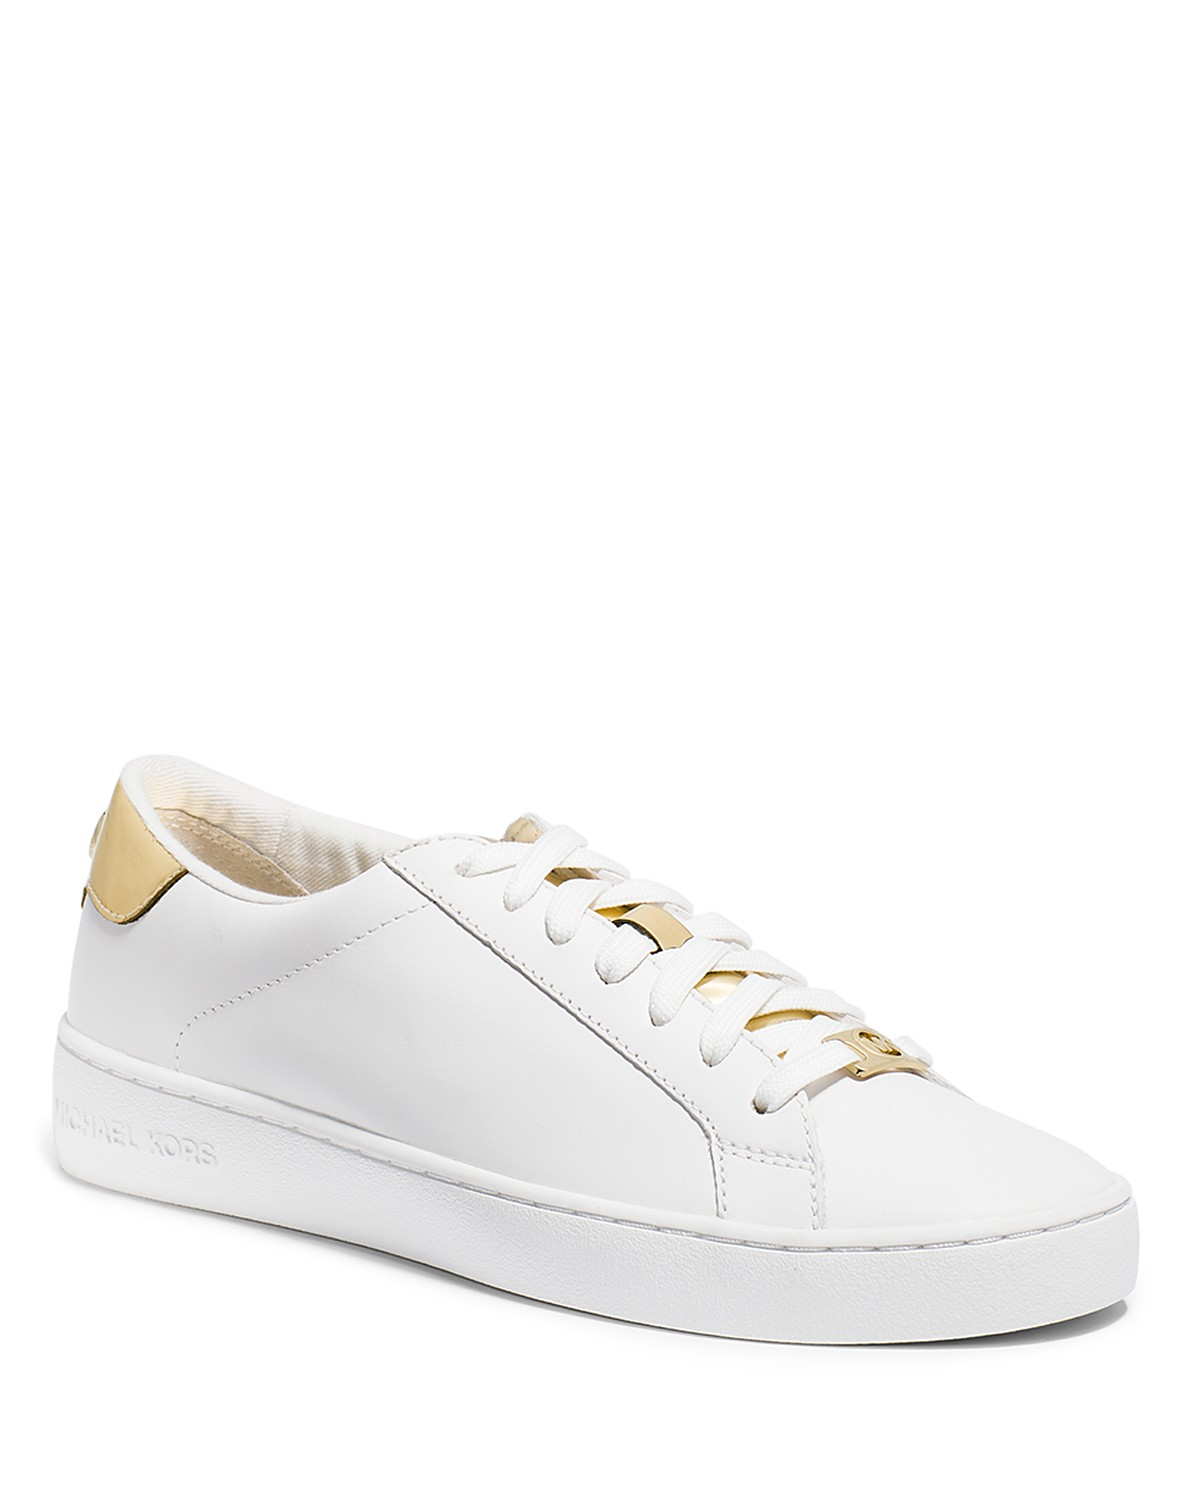 lace-up sneakers - White Michael Michael Kors sqFQtI